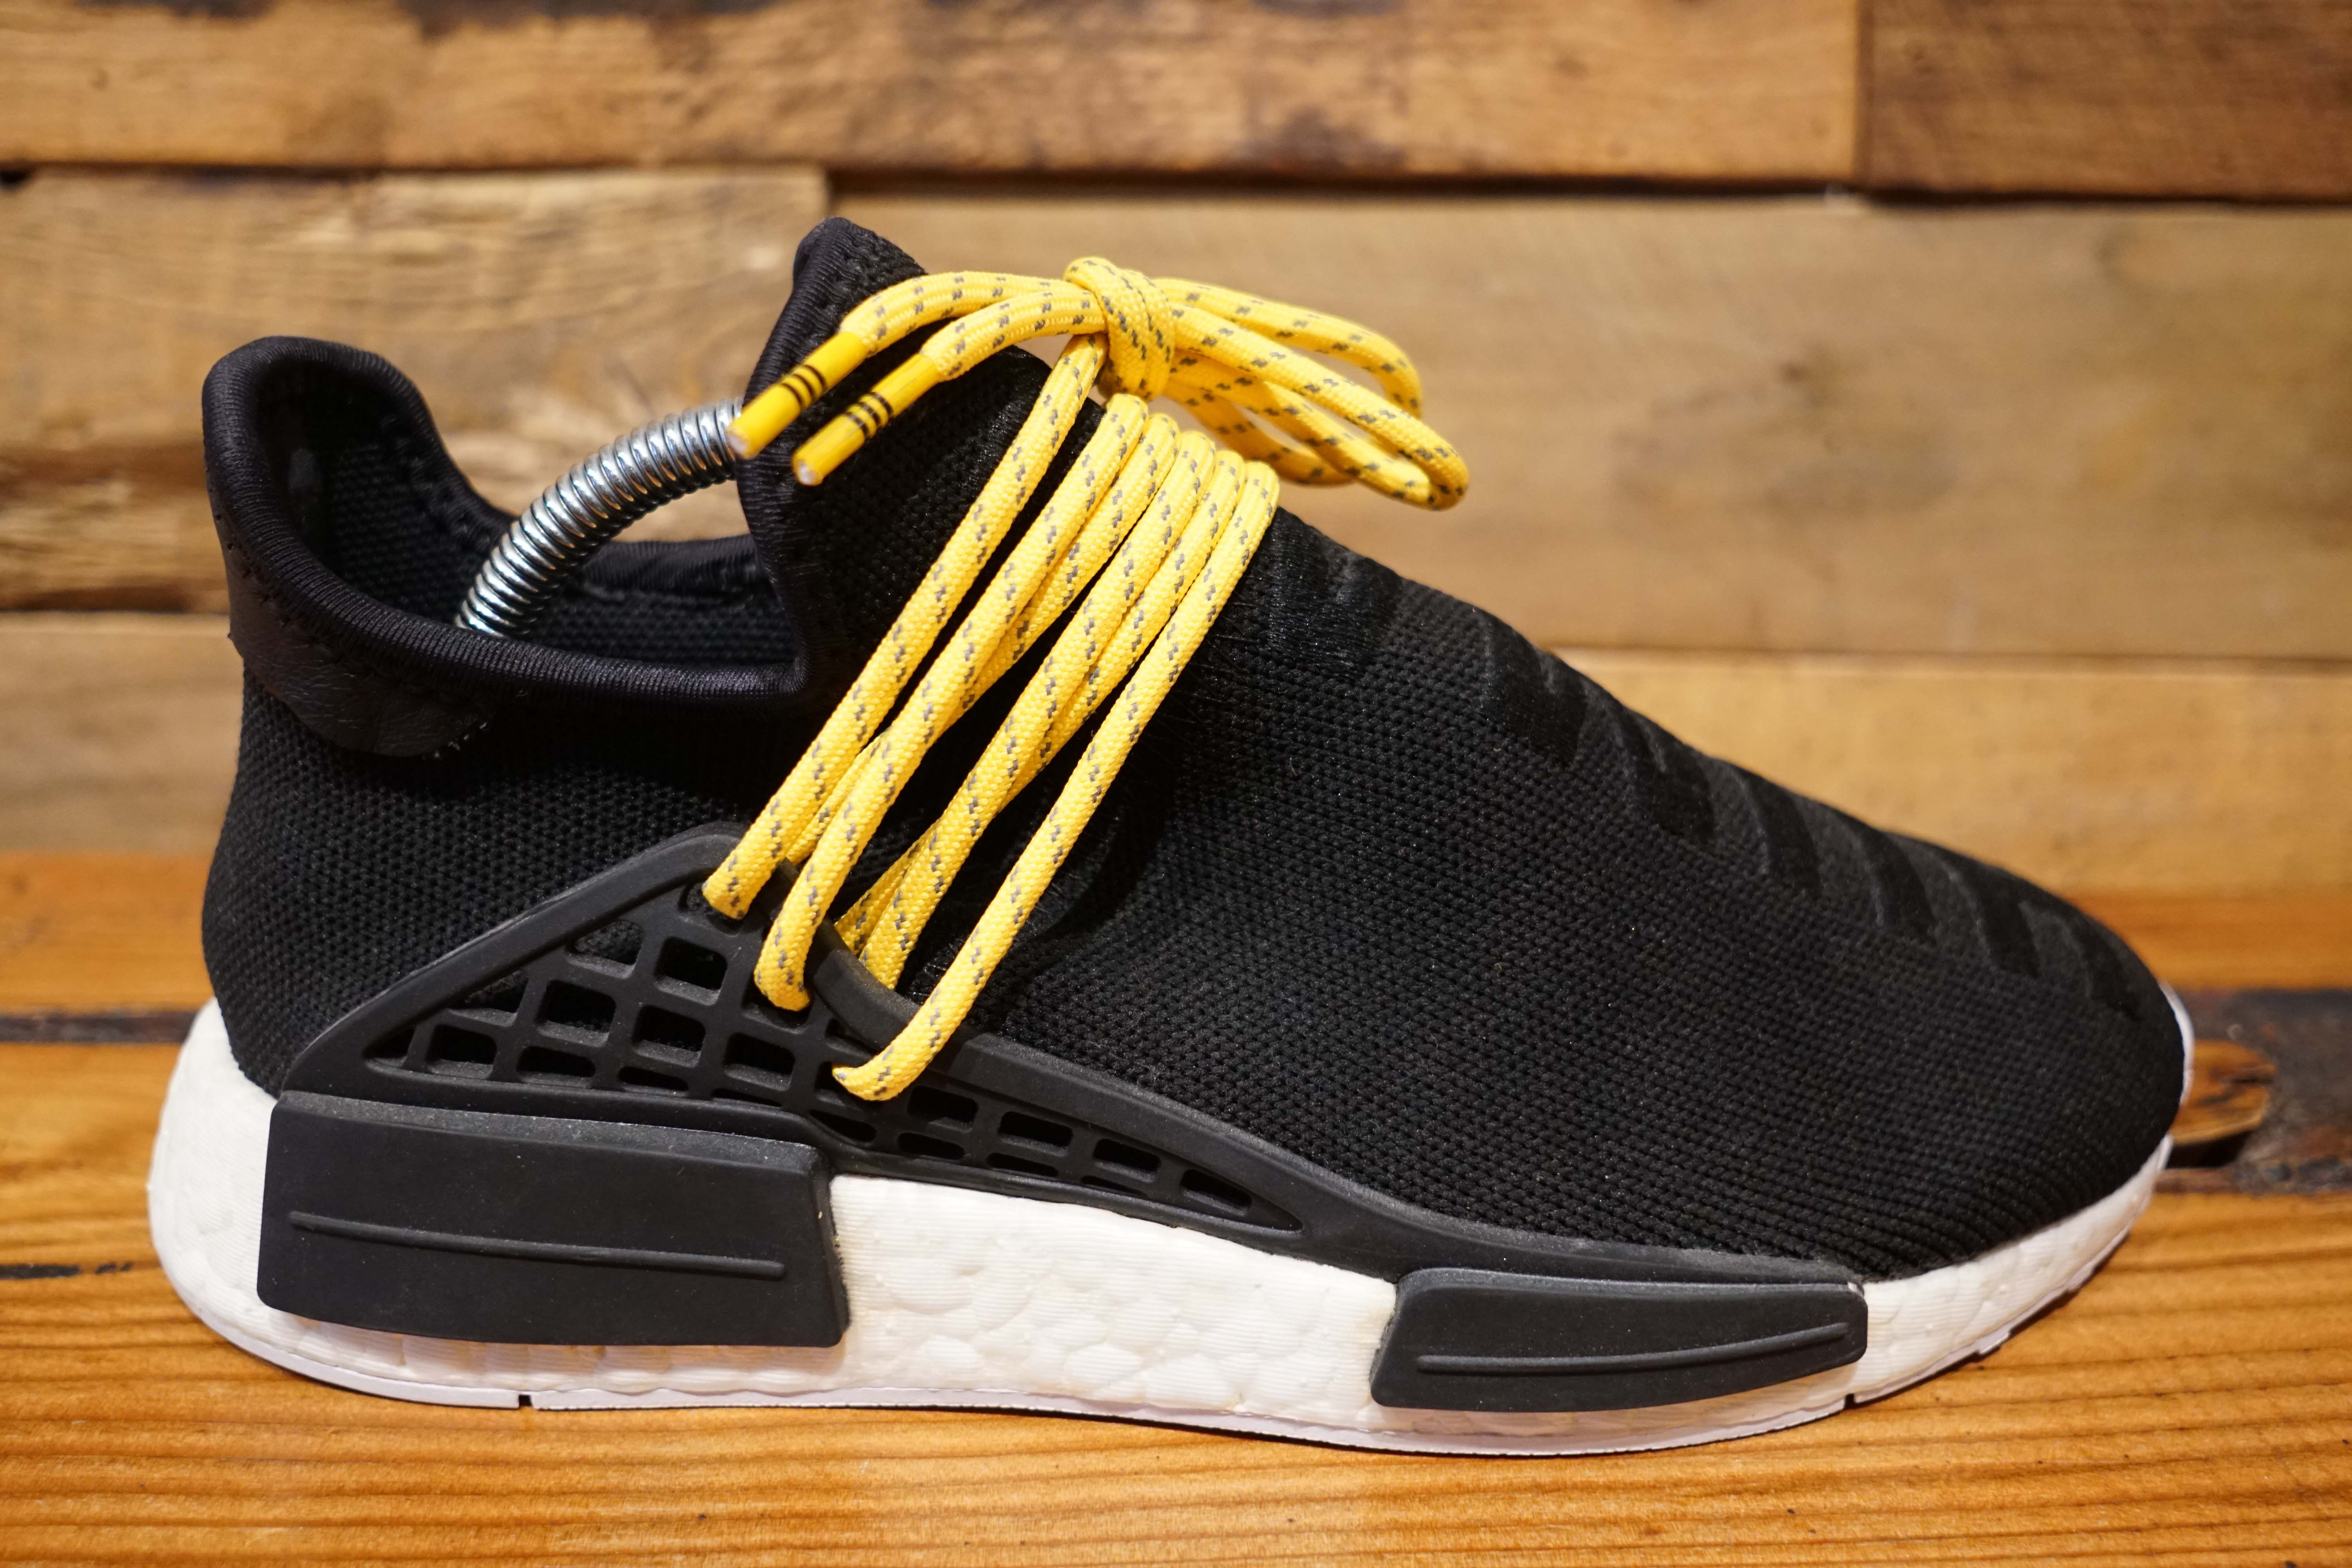 da5fb51af9d5 Adidas PW Human Race NMD 2016 Used Original Box Size 7 (2-2052 ...